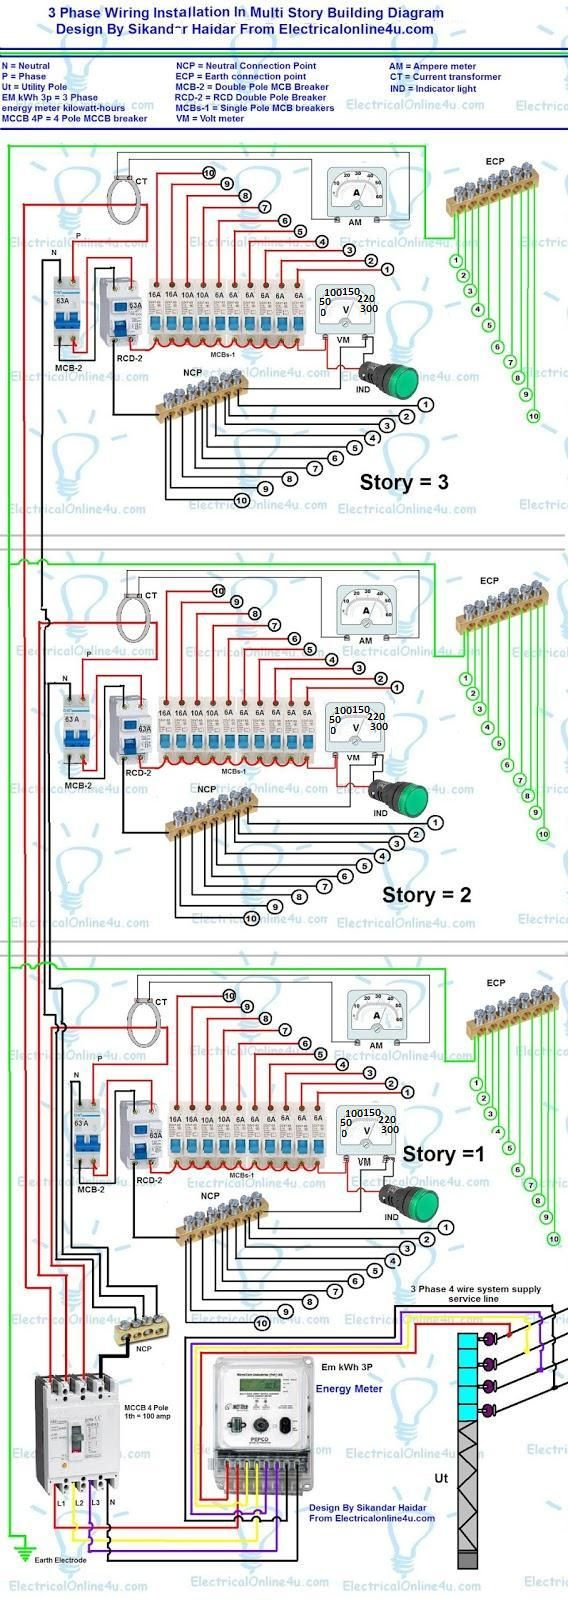 3 phase wiring installation diagram | electric | Pinterest ...